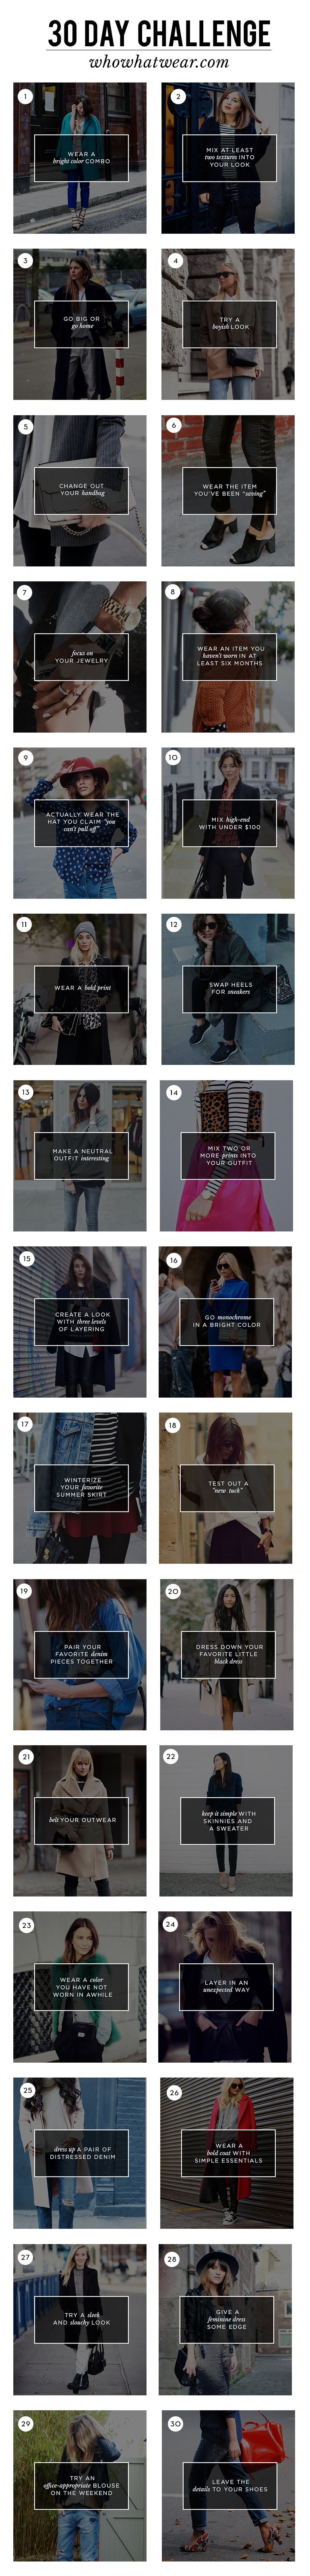 Who What Wear's 30-Day Wardrobe Challenge: A different daily style challenge to change the way you look at your wardrobe and invigorate your dressing over the next 30 days.